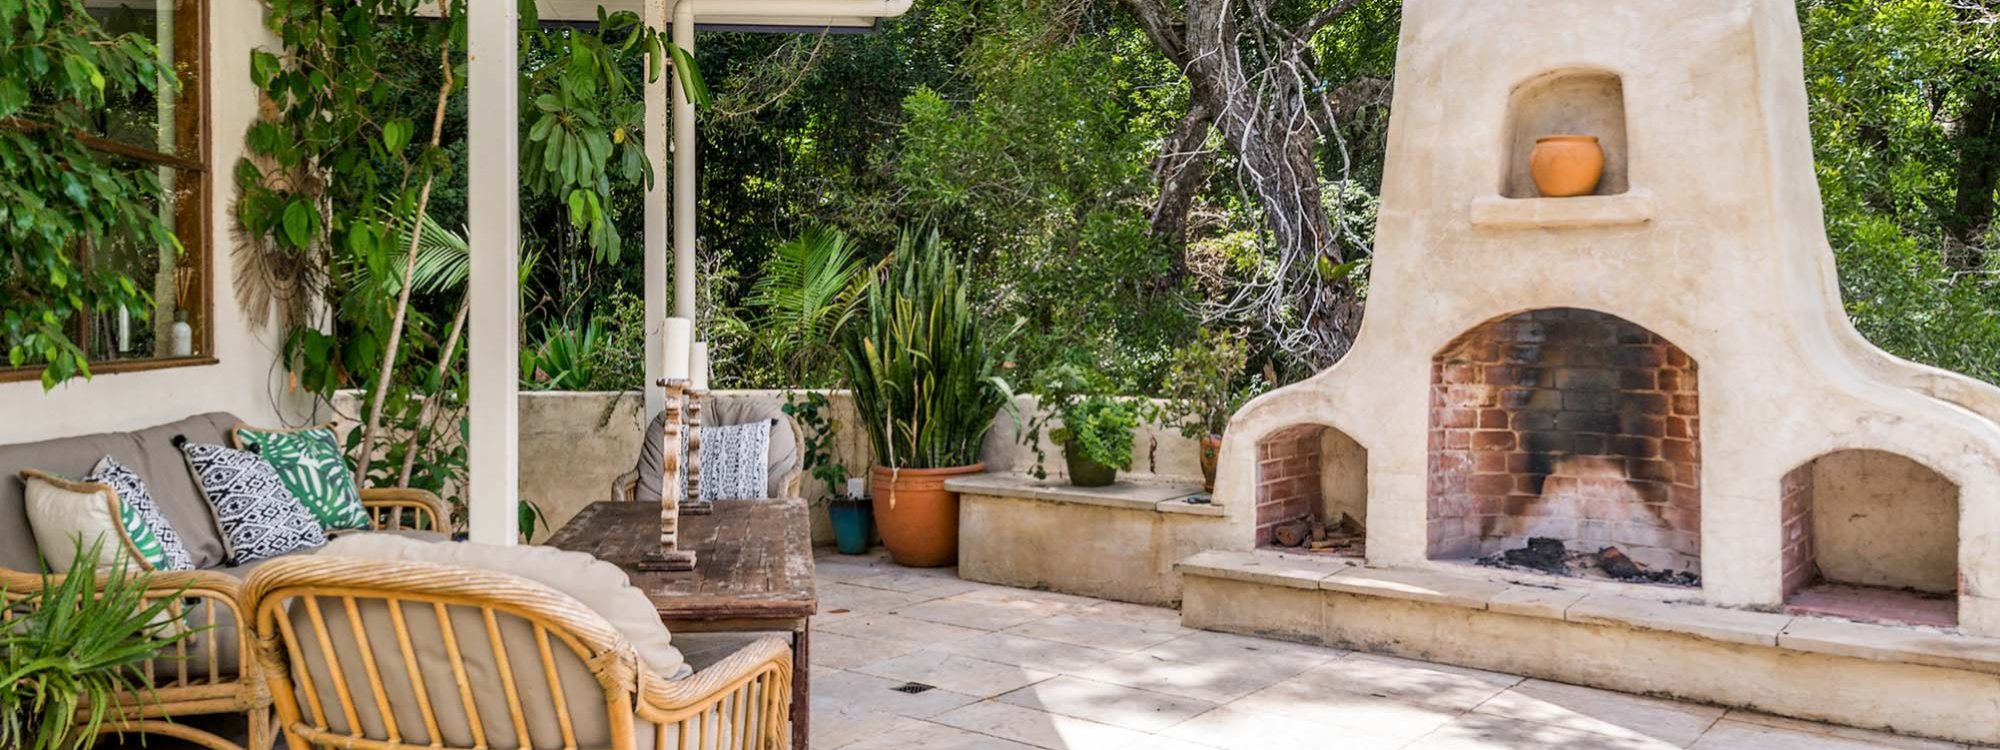 Casa Serena - Byron Bay - Outdoor Fireplace